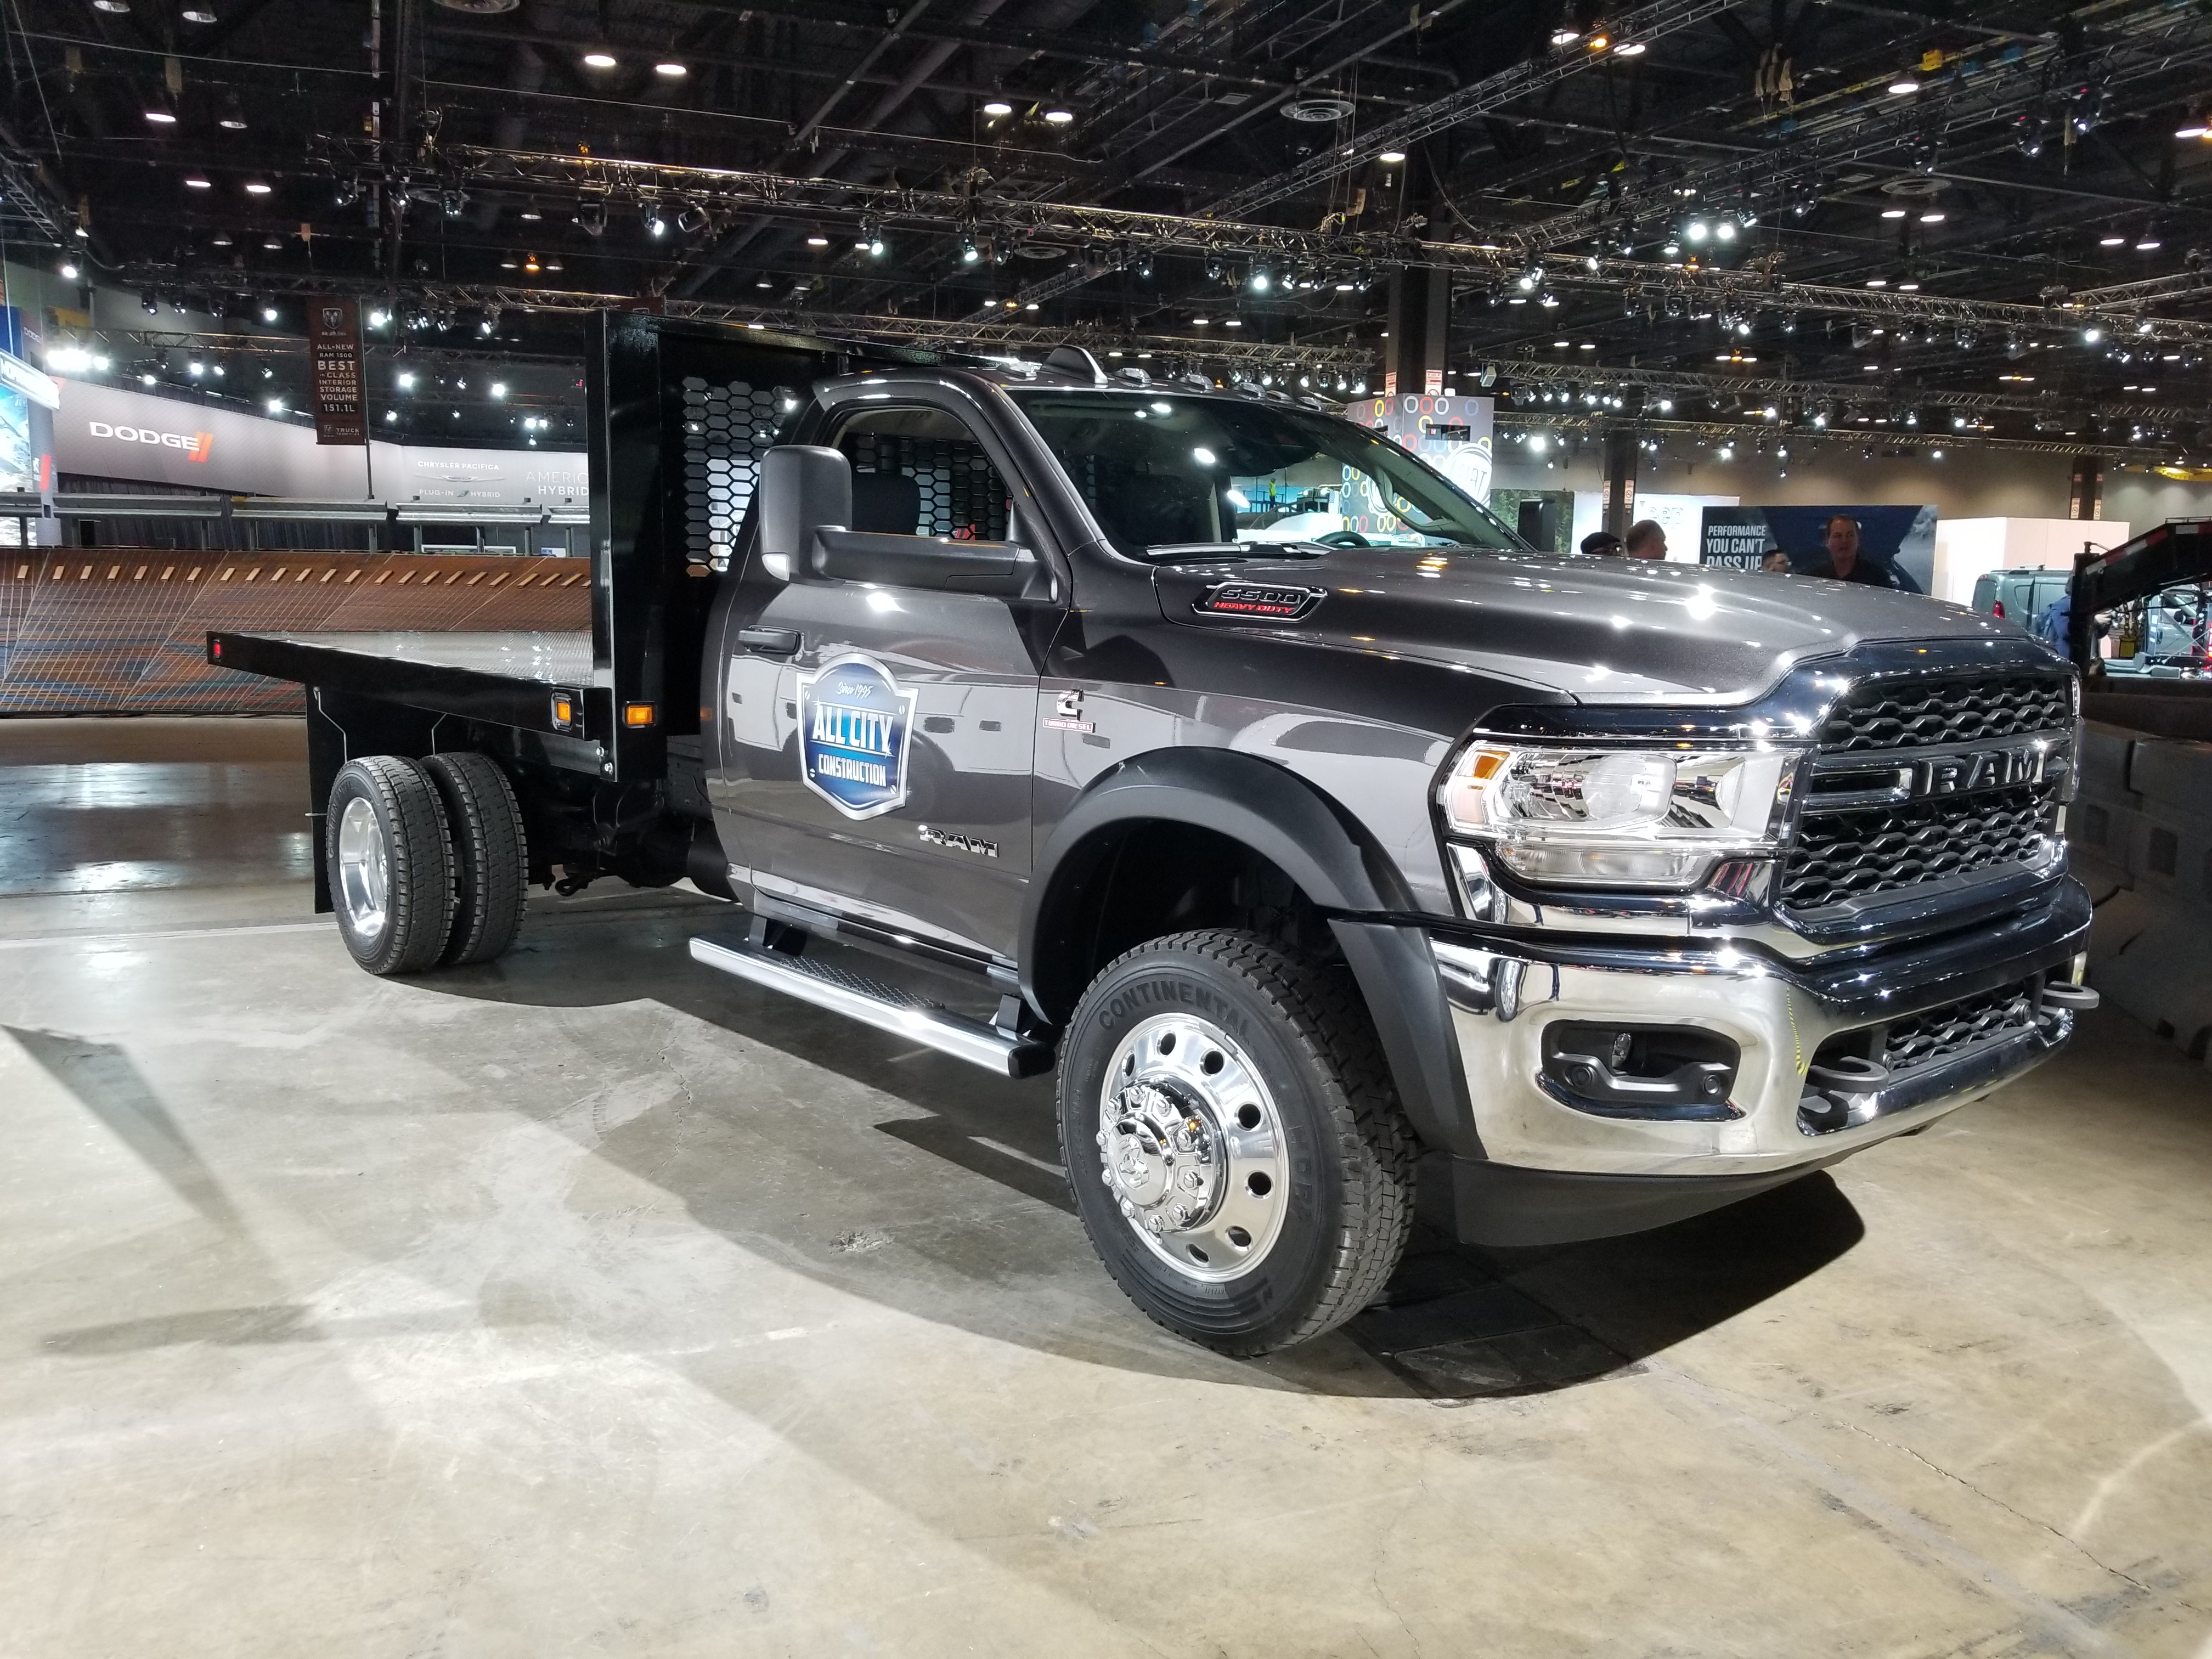 2020 Ram Chassis Cab Brings A New Generation Of Work ...